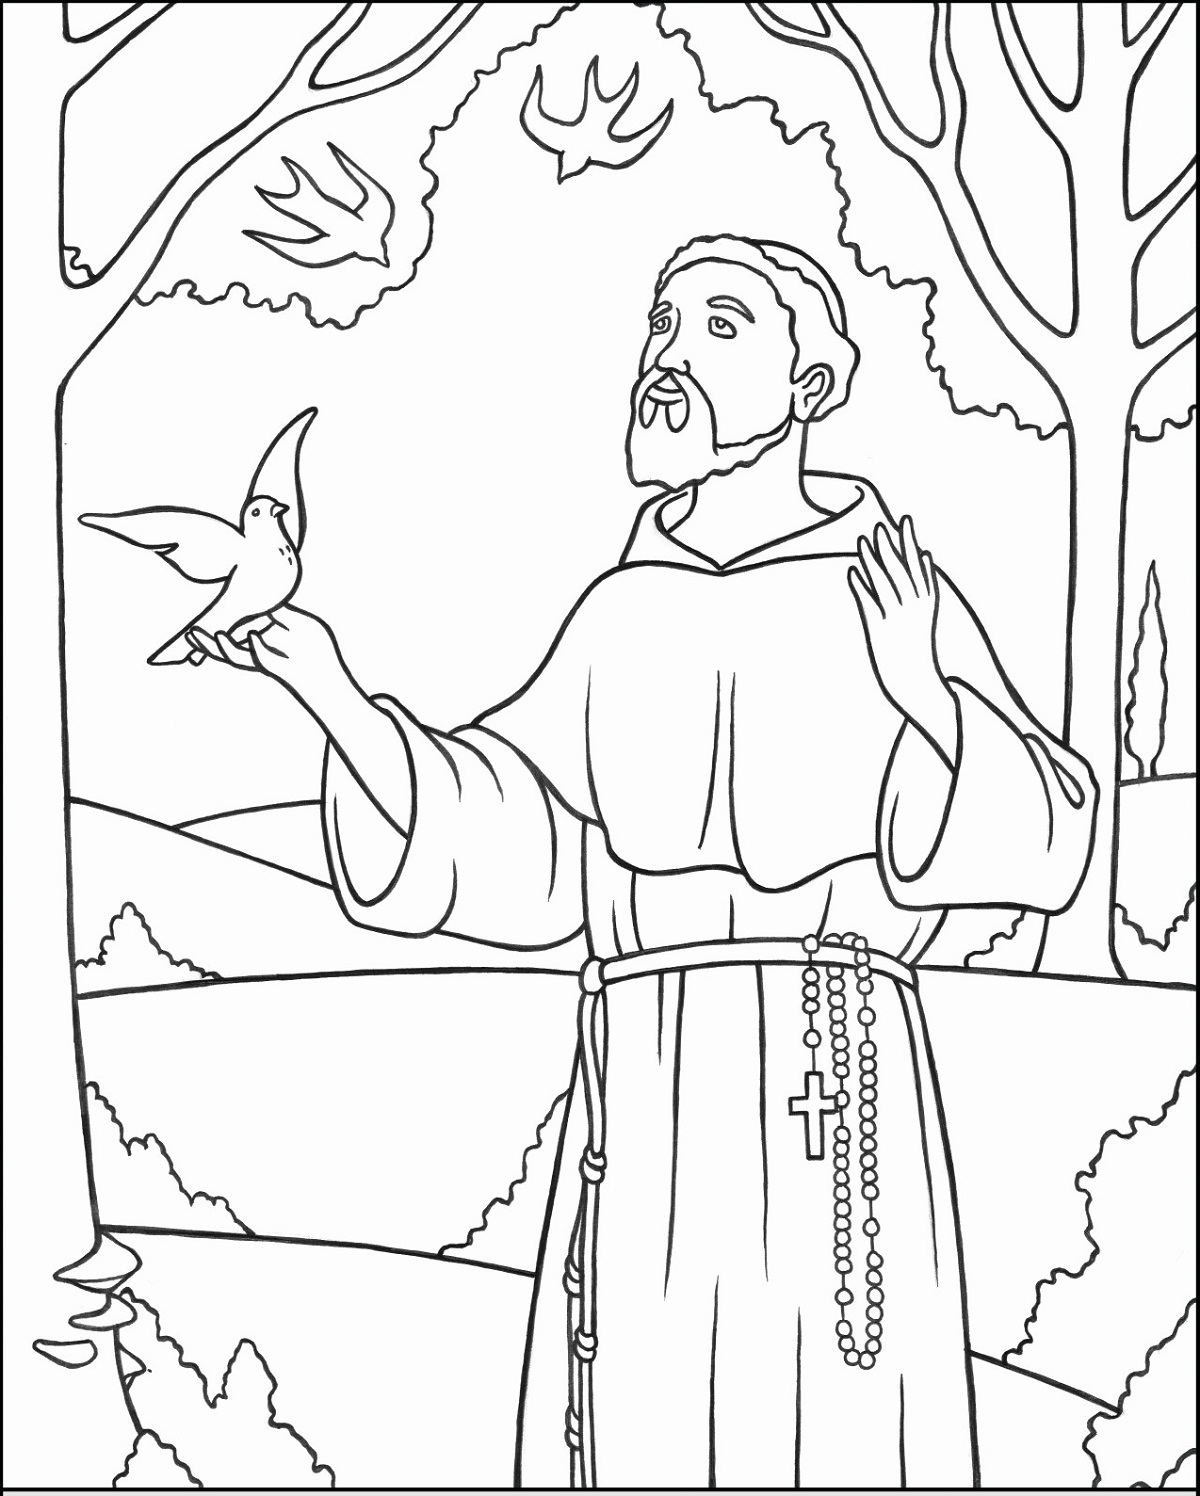 all saints coloring activity shelter kids disney princesses print dolphin hulk color by coloring pages All Saints Day Coloring Page